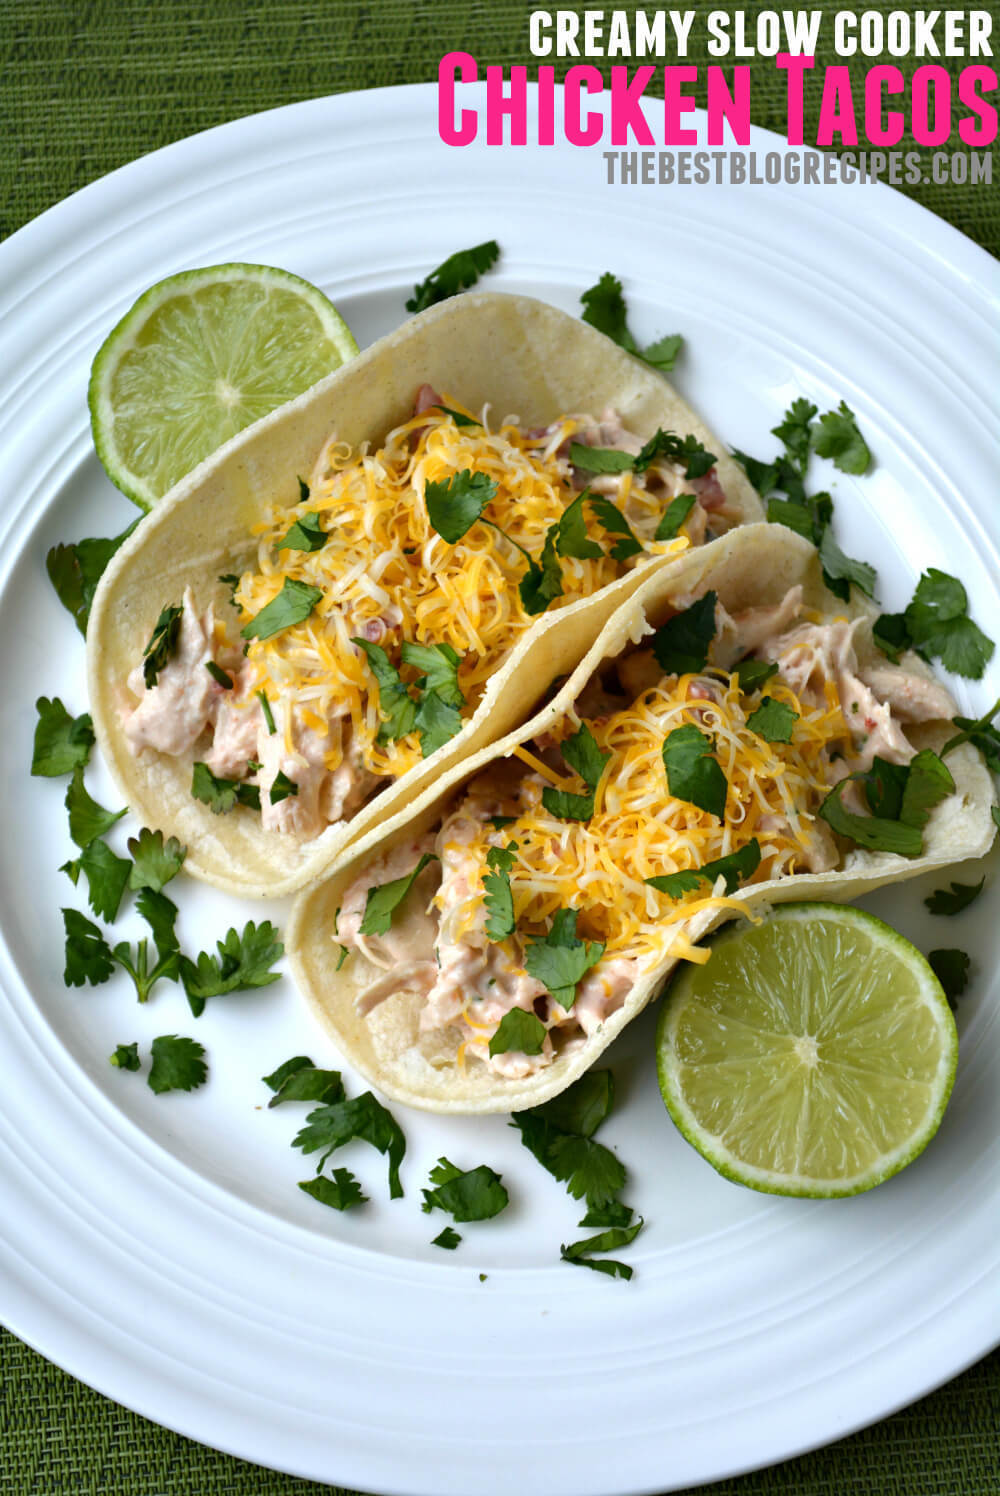 Creamy Slow Cooker Chicken Tacos